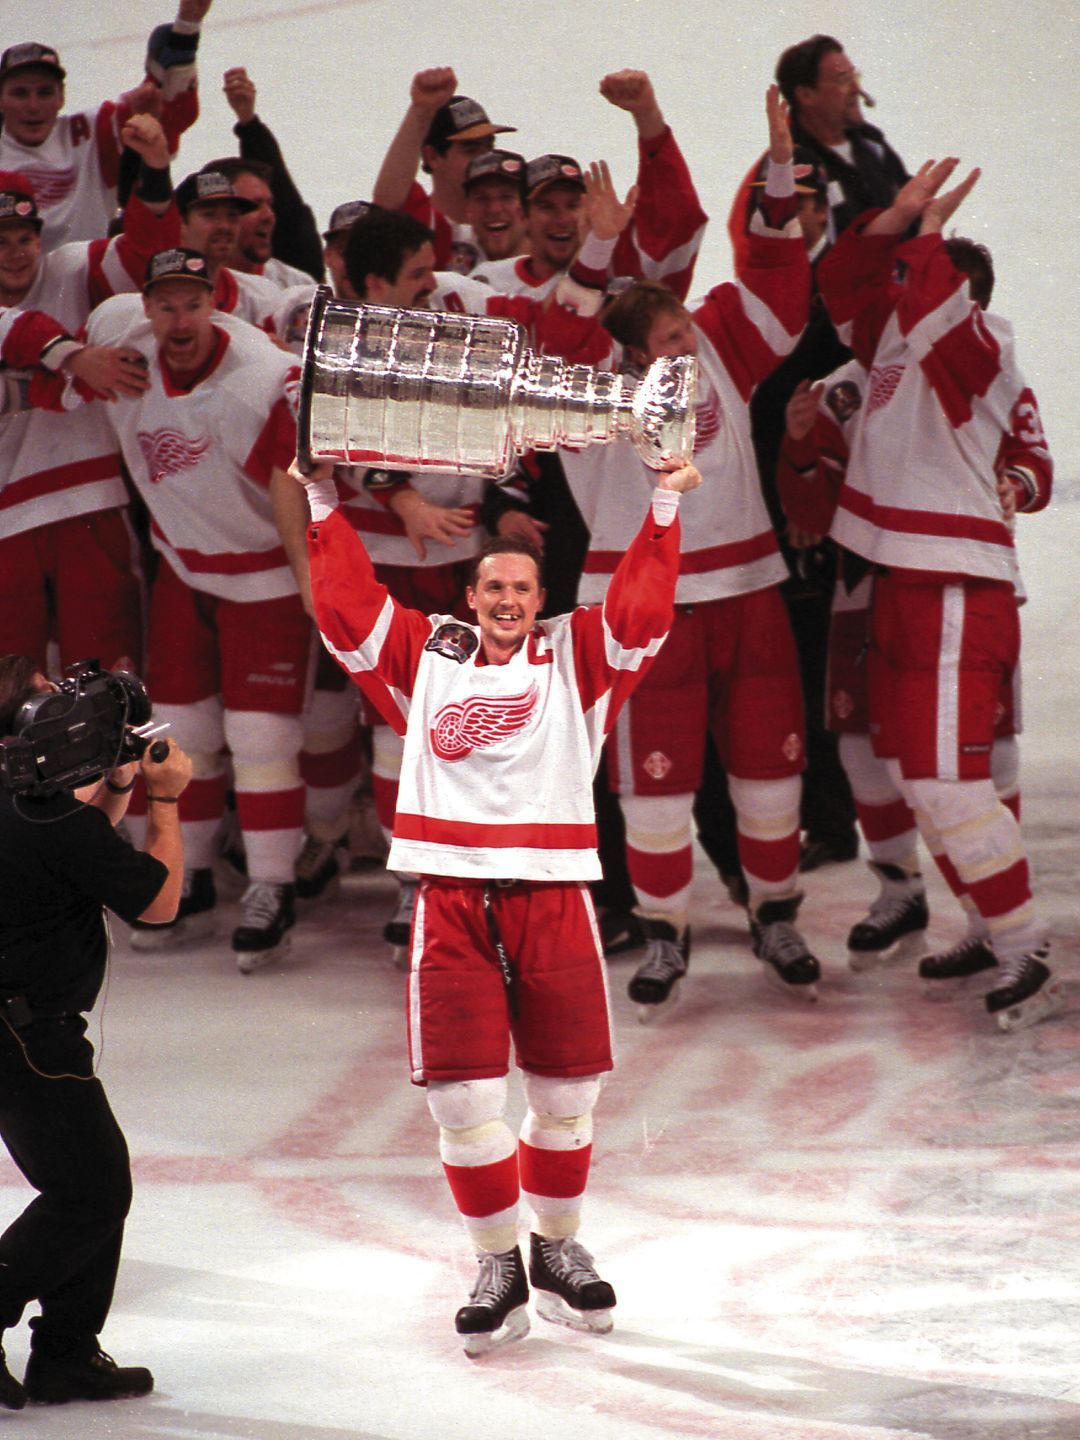 f6952dd91 Red Wings captain Steve Yzerman hoists the Stanley Cup trophy after Detroit  dispatched Philadelphia in four games to win the NHL Championship in 1997.